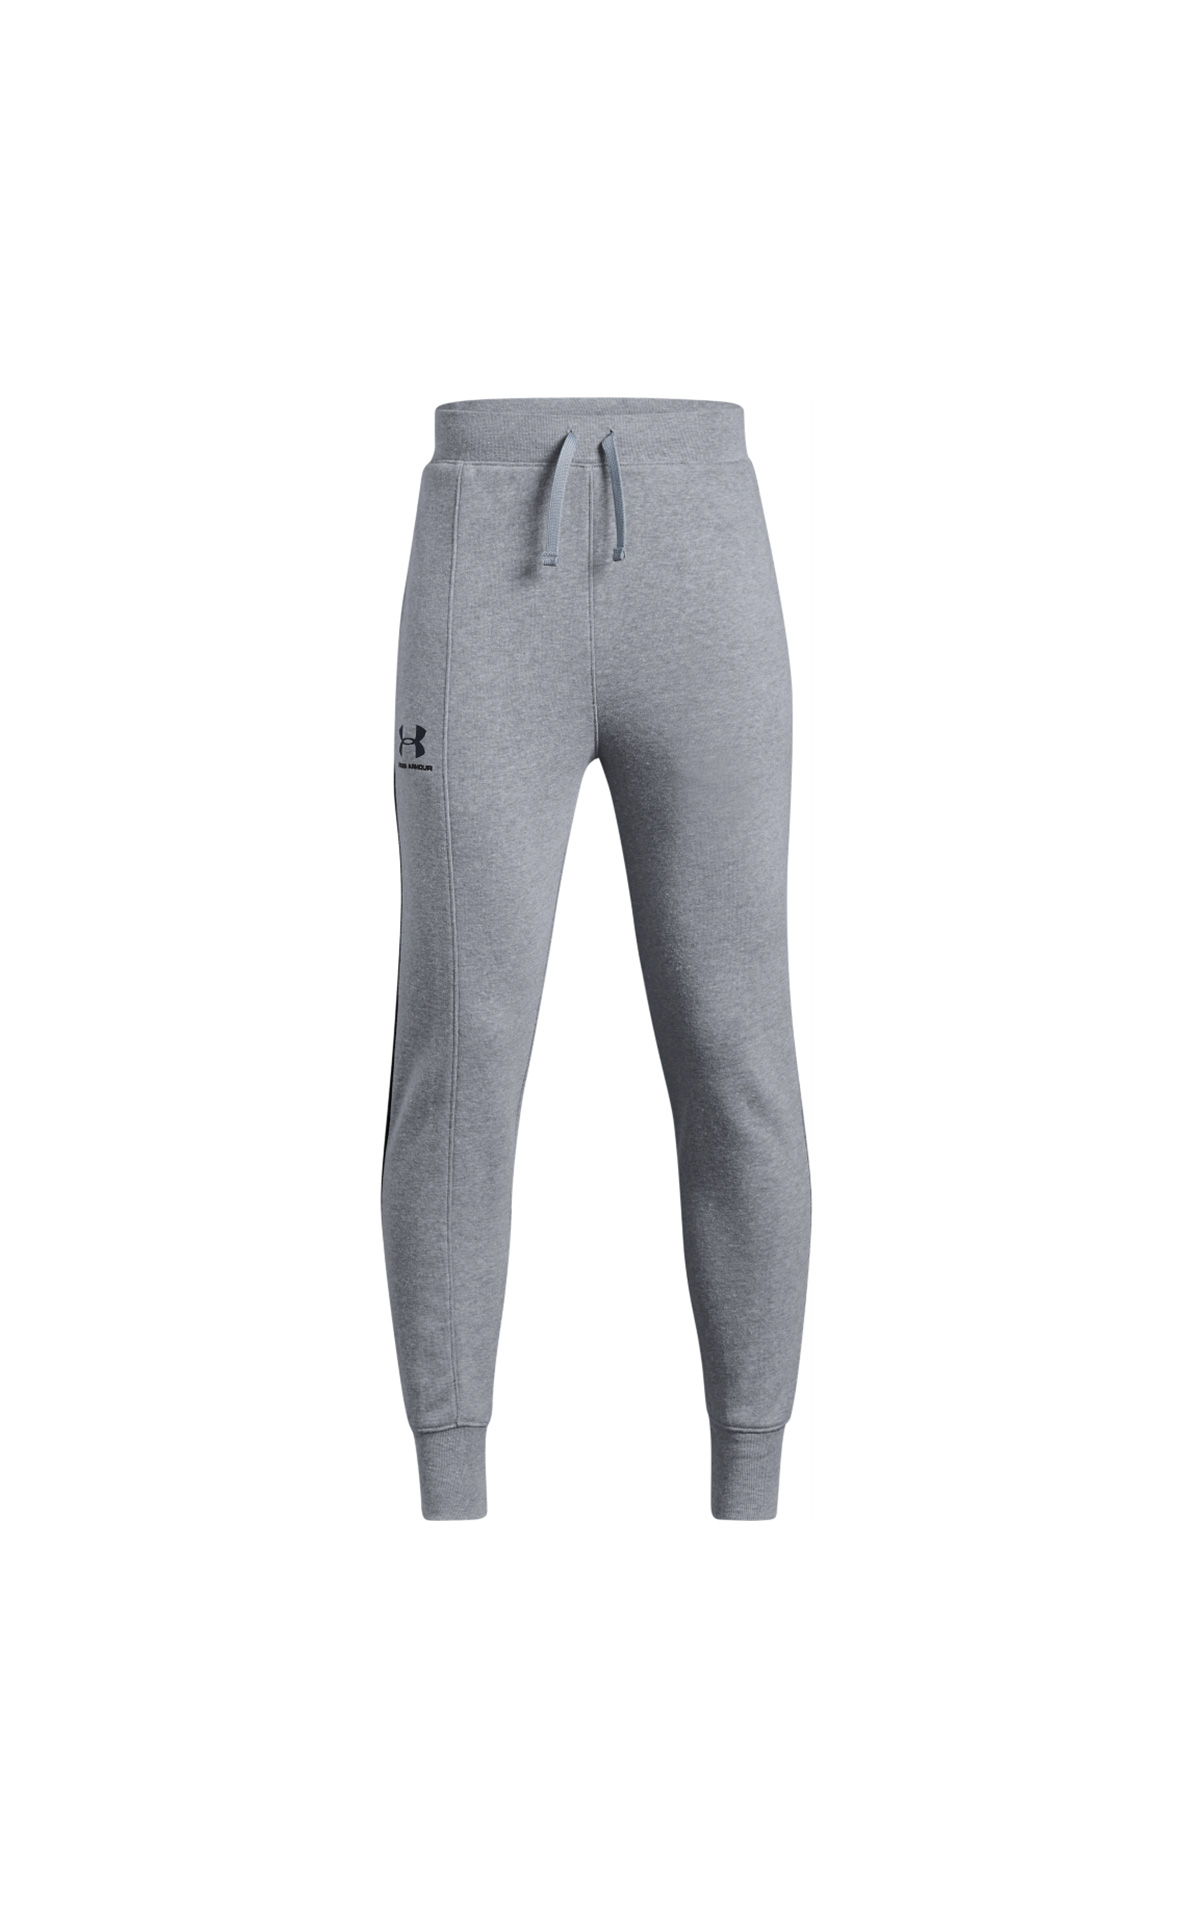 Under Armour Boy's Rival Blocked Jogger